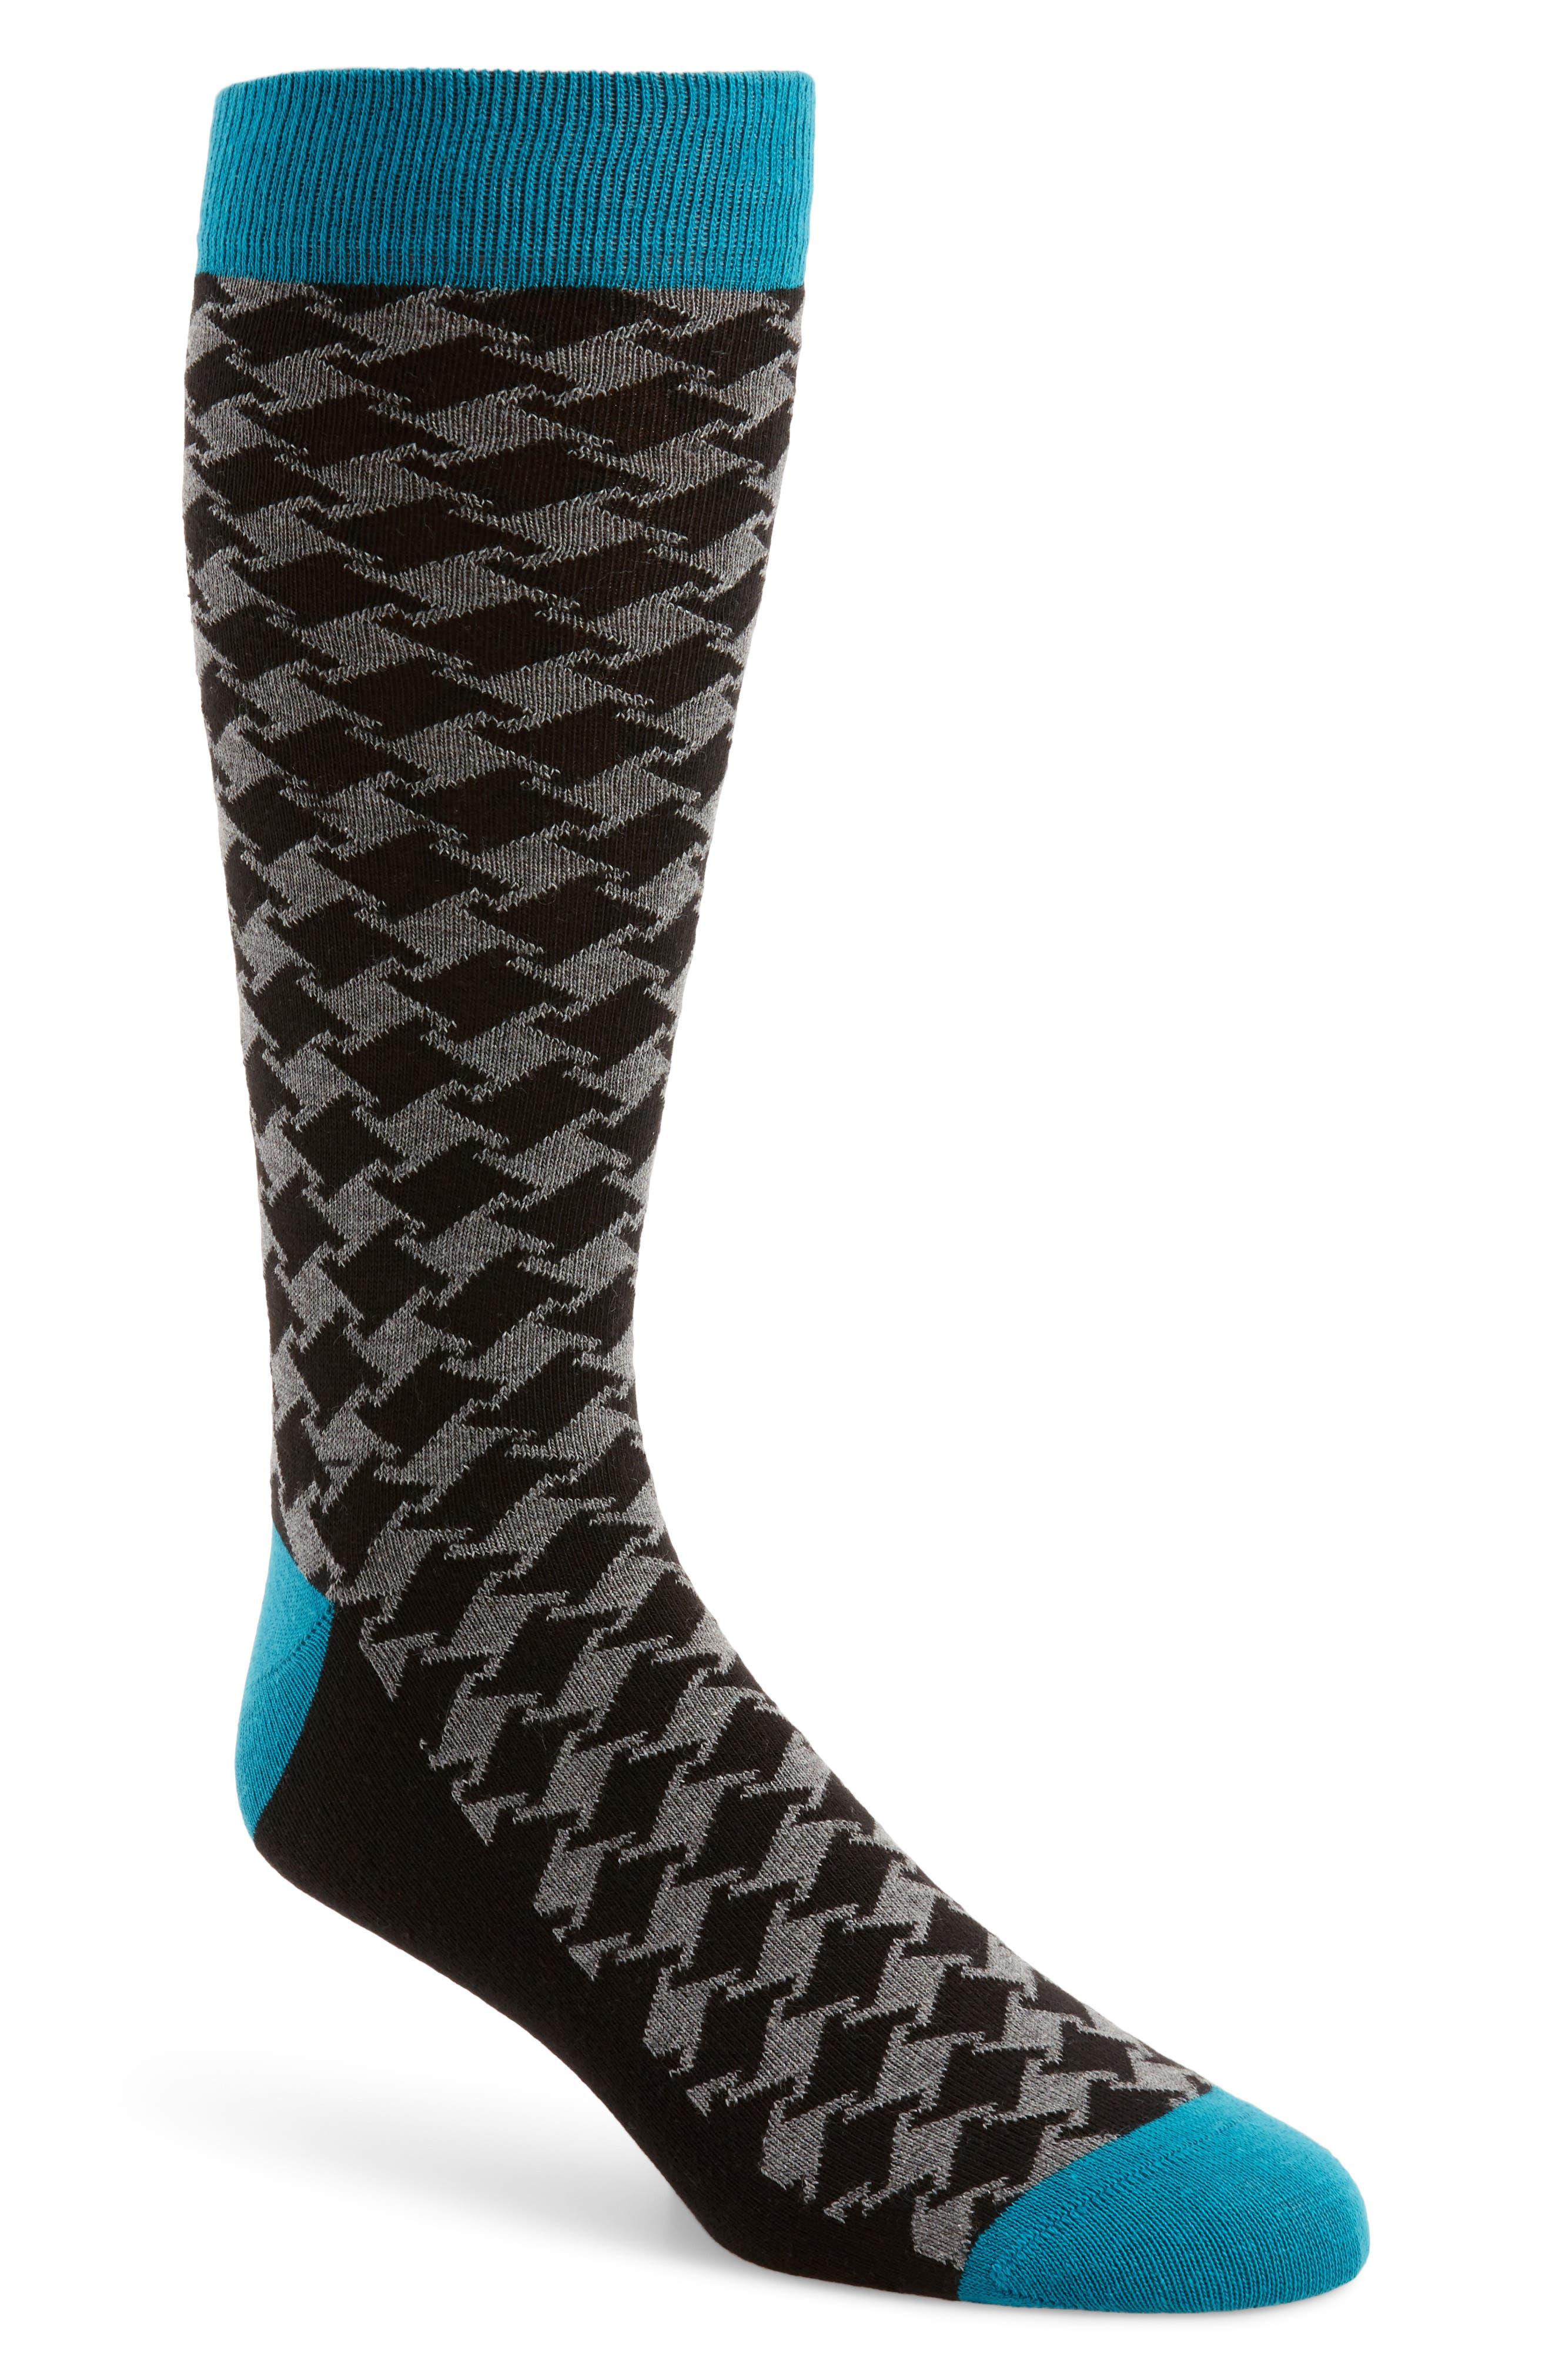 Houndstooth Socks,                         Main,                         color, 420